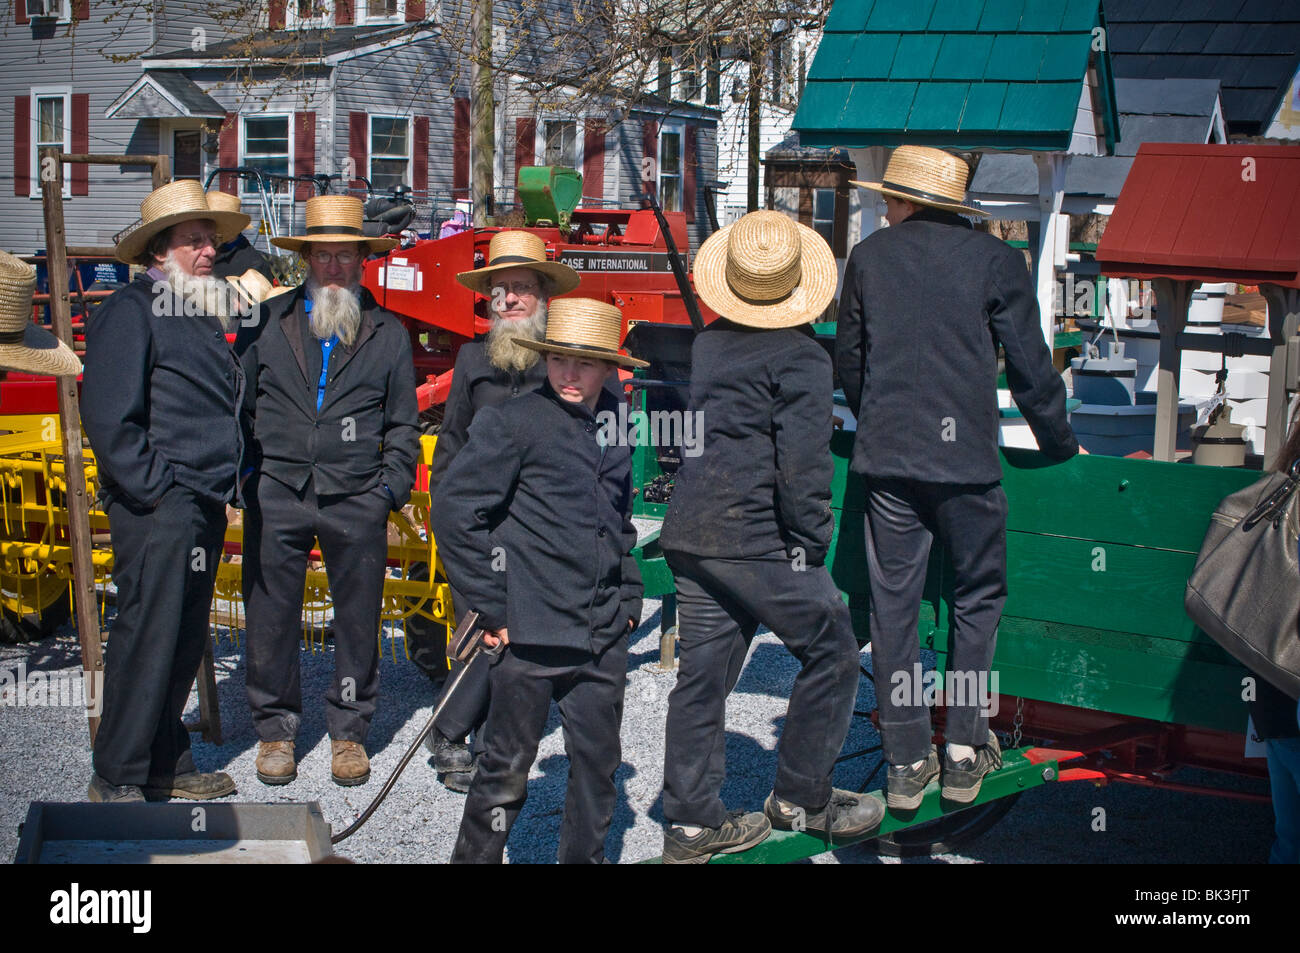 Amish People Stock Photos & Amish People Stock Images - Alamy